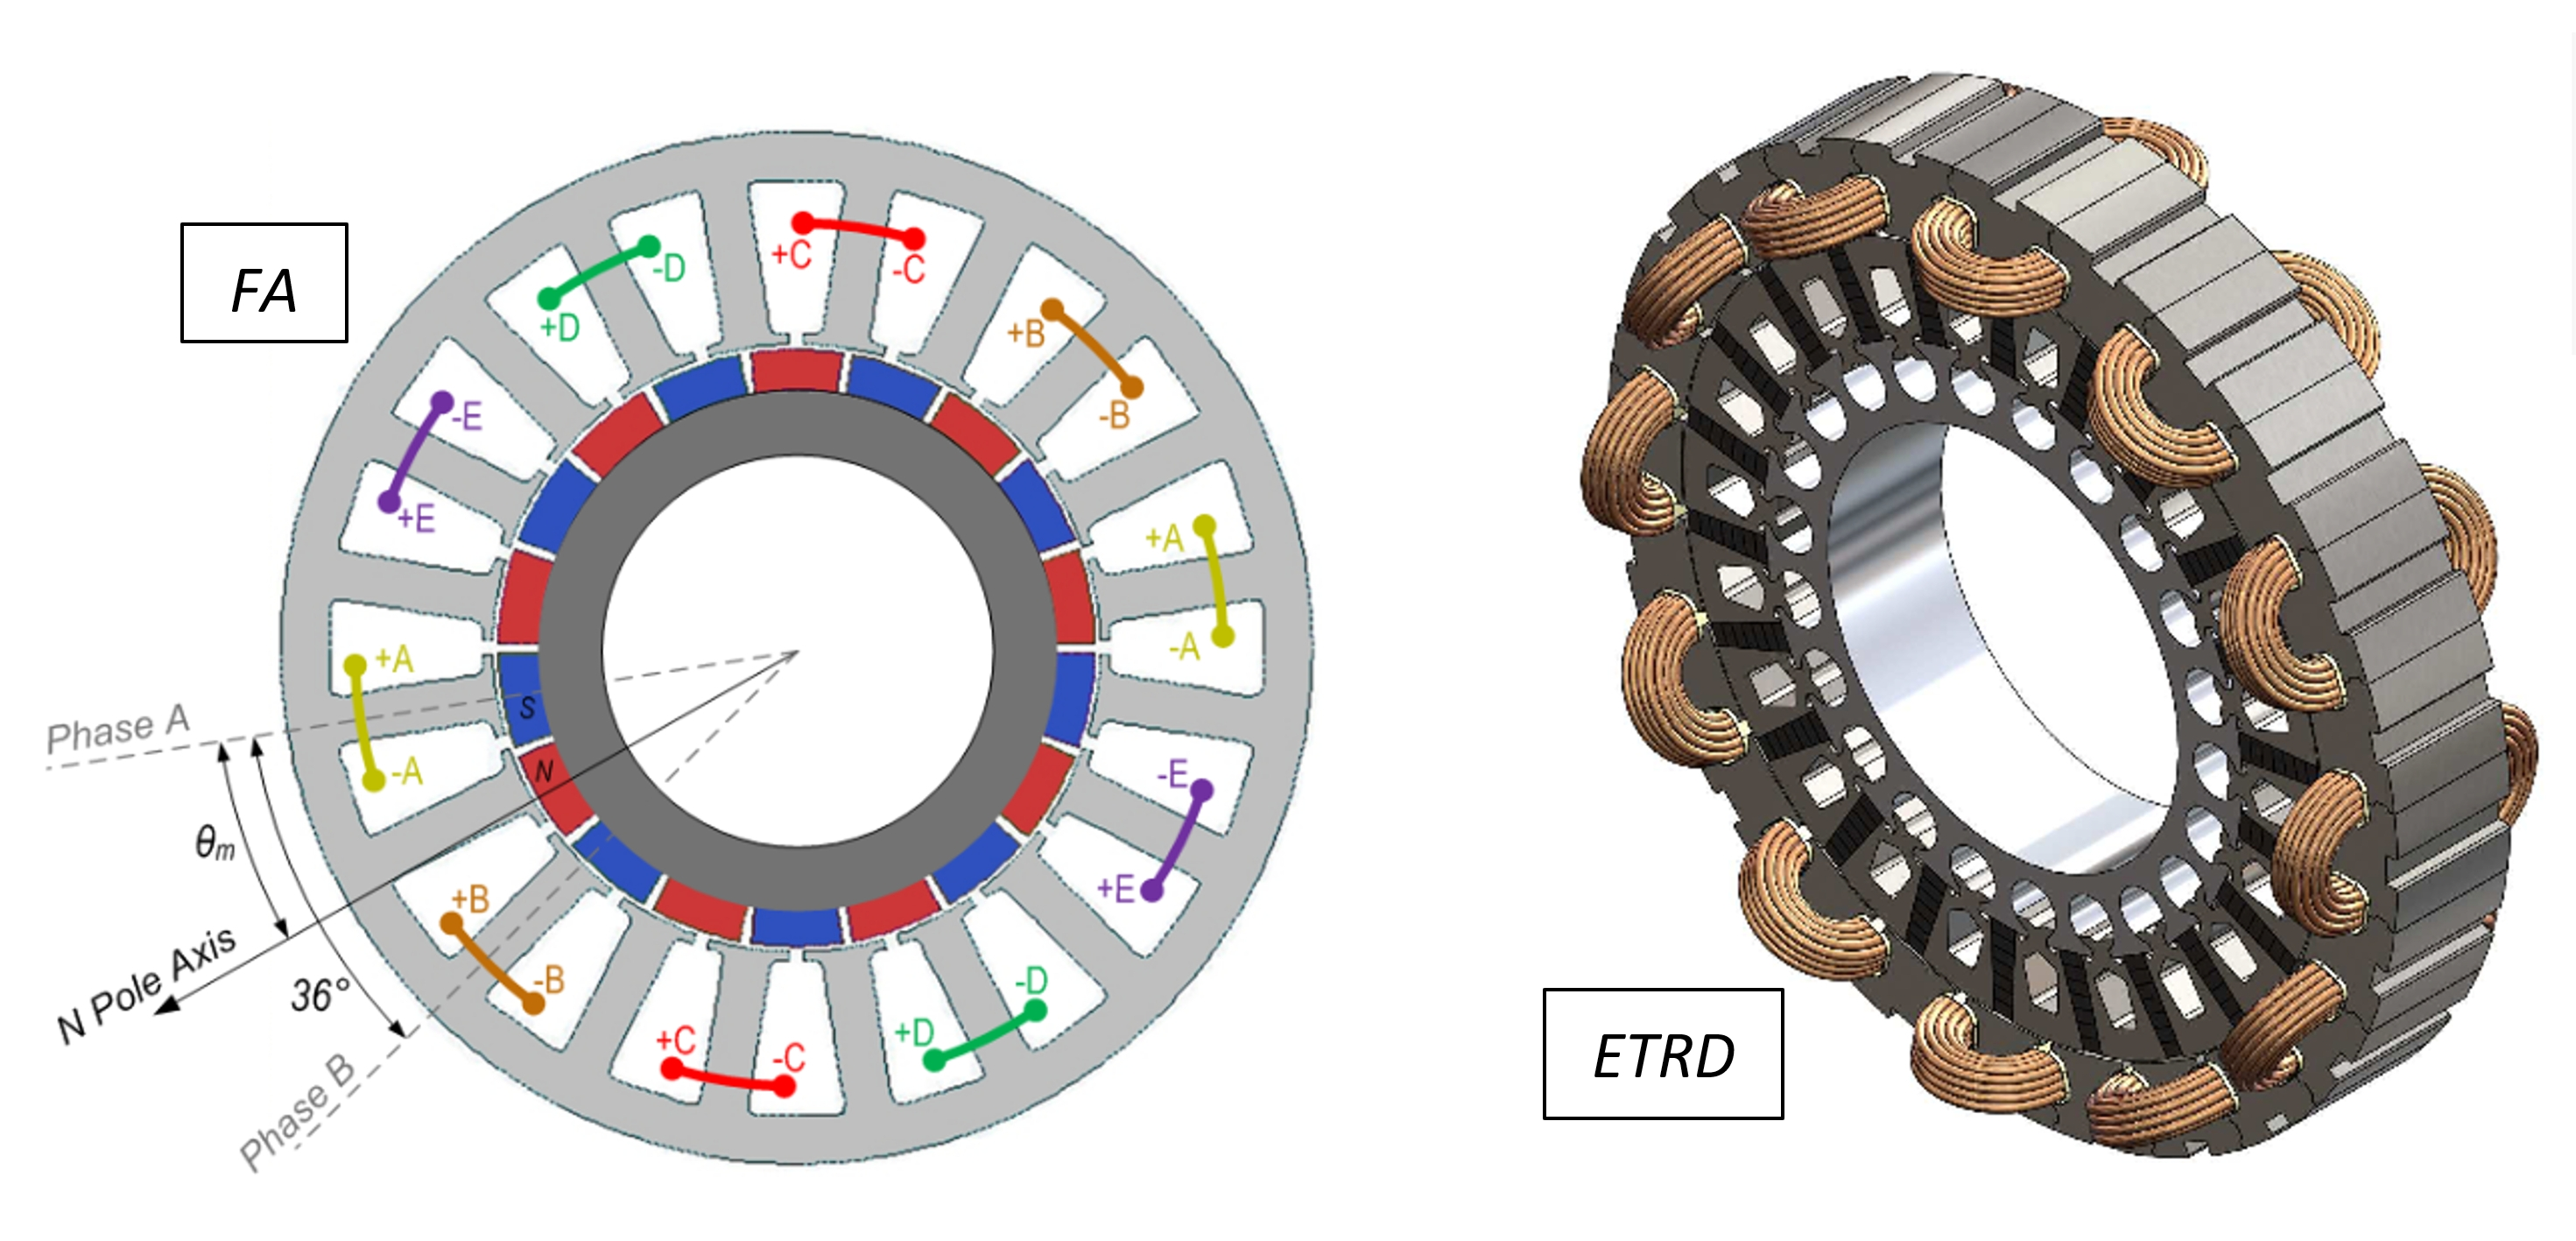 Fault-tolerant motors for flap application (FA) and tail rotor drive (ETRD)